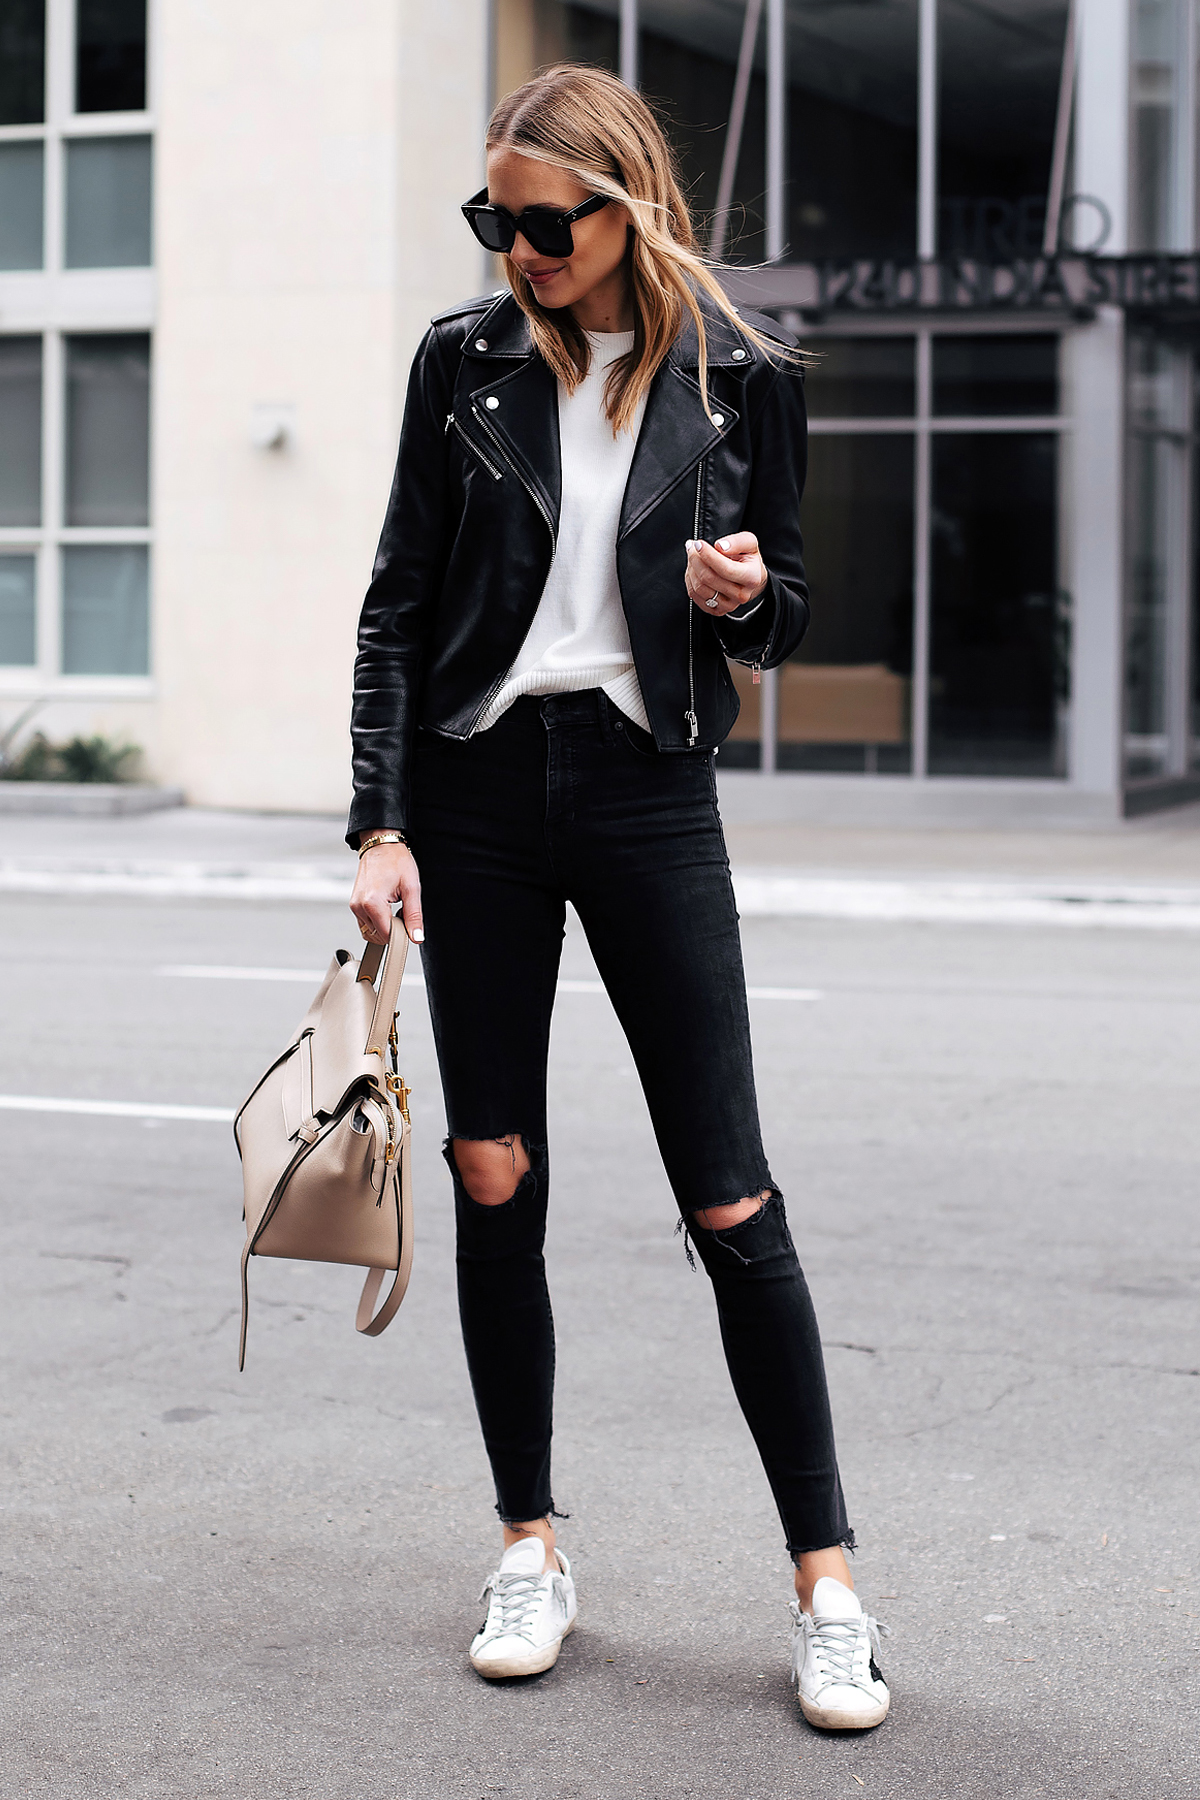 Fashion Jackson Capsule Wardrobe Wearing Club Monaco Black Leather Jacket White Sweater Madewell Black Ripped Skinny Jeans Golden Goose Sneakers